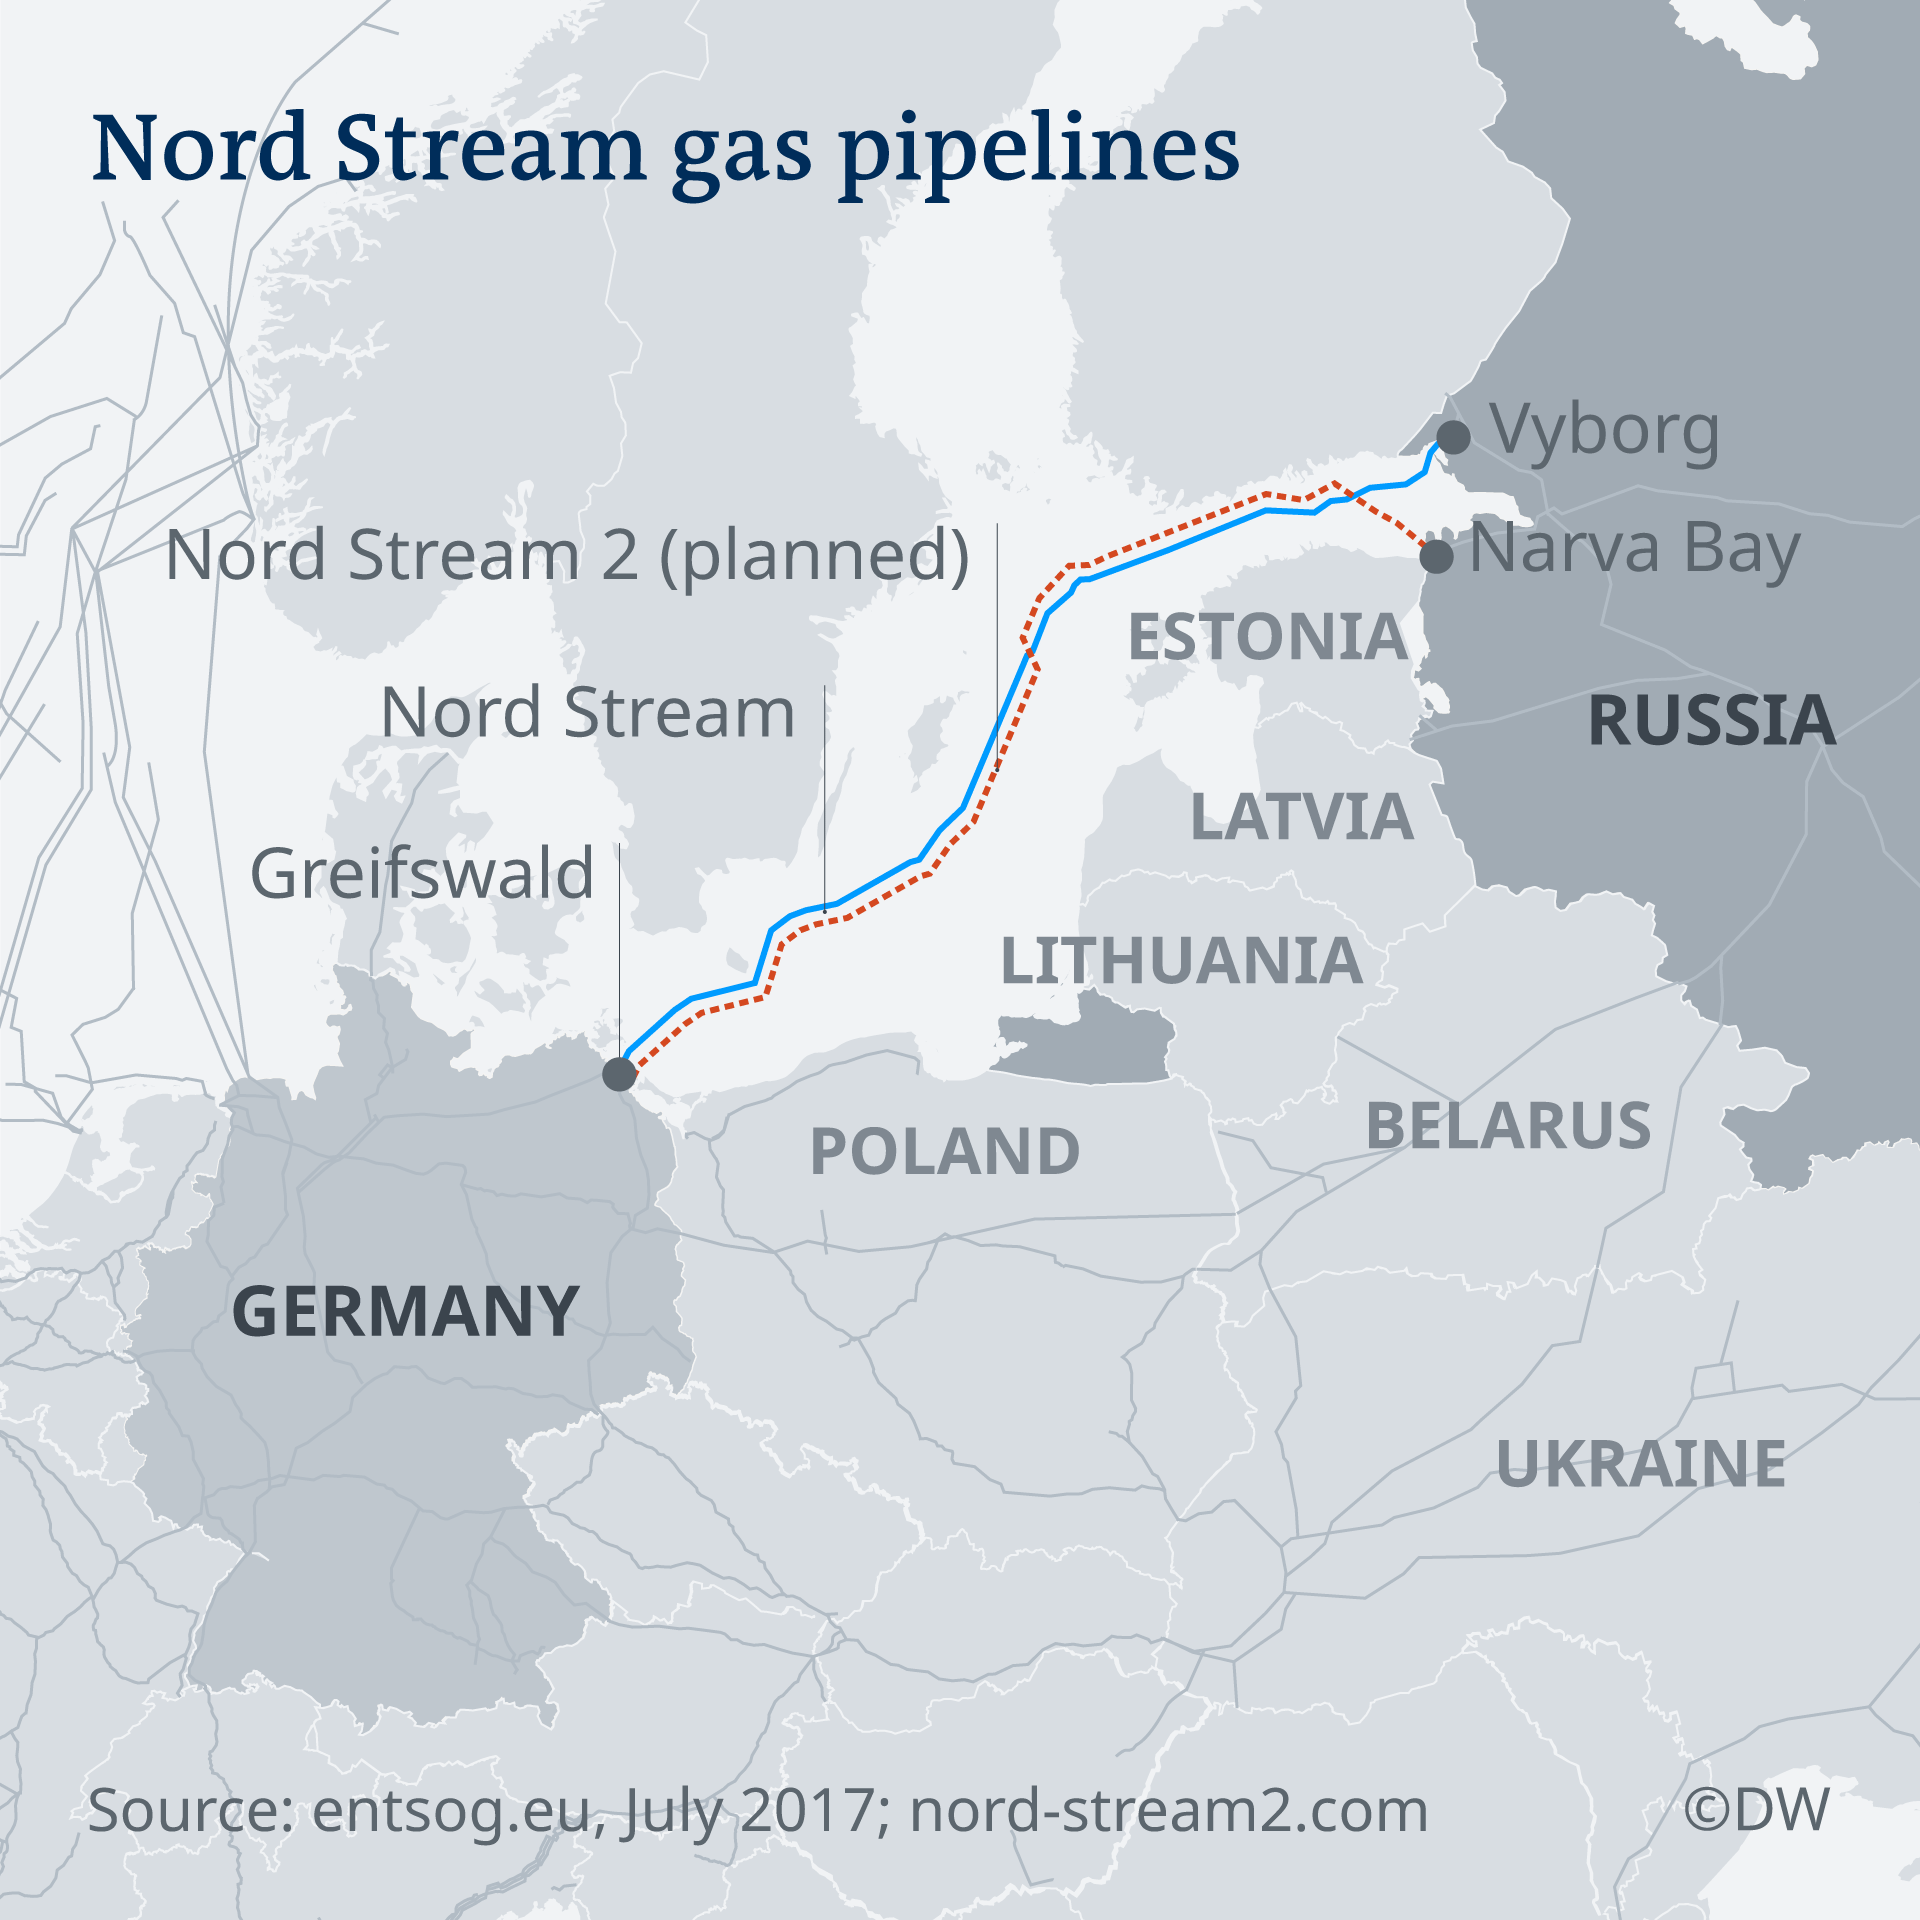 Infographic highlighting the Nord Stream and Nord Stream 2 pipelines in the Baltic sea